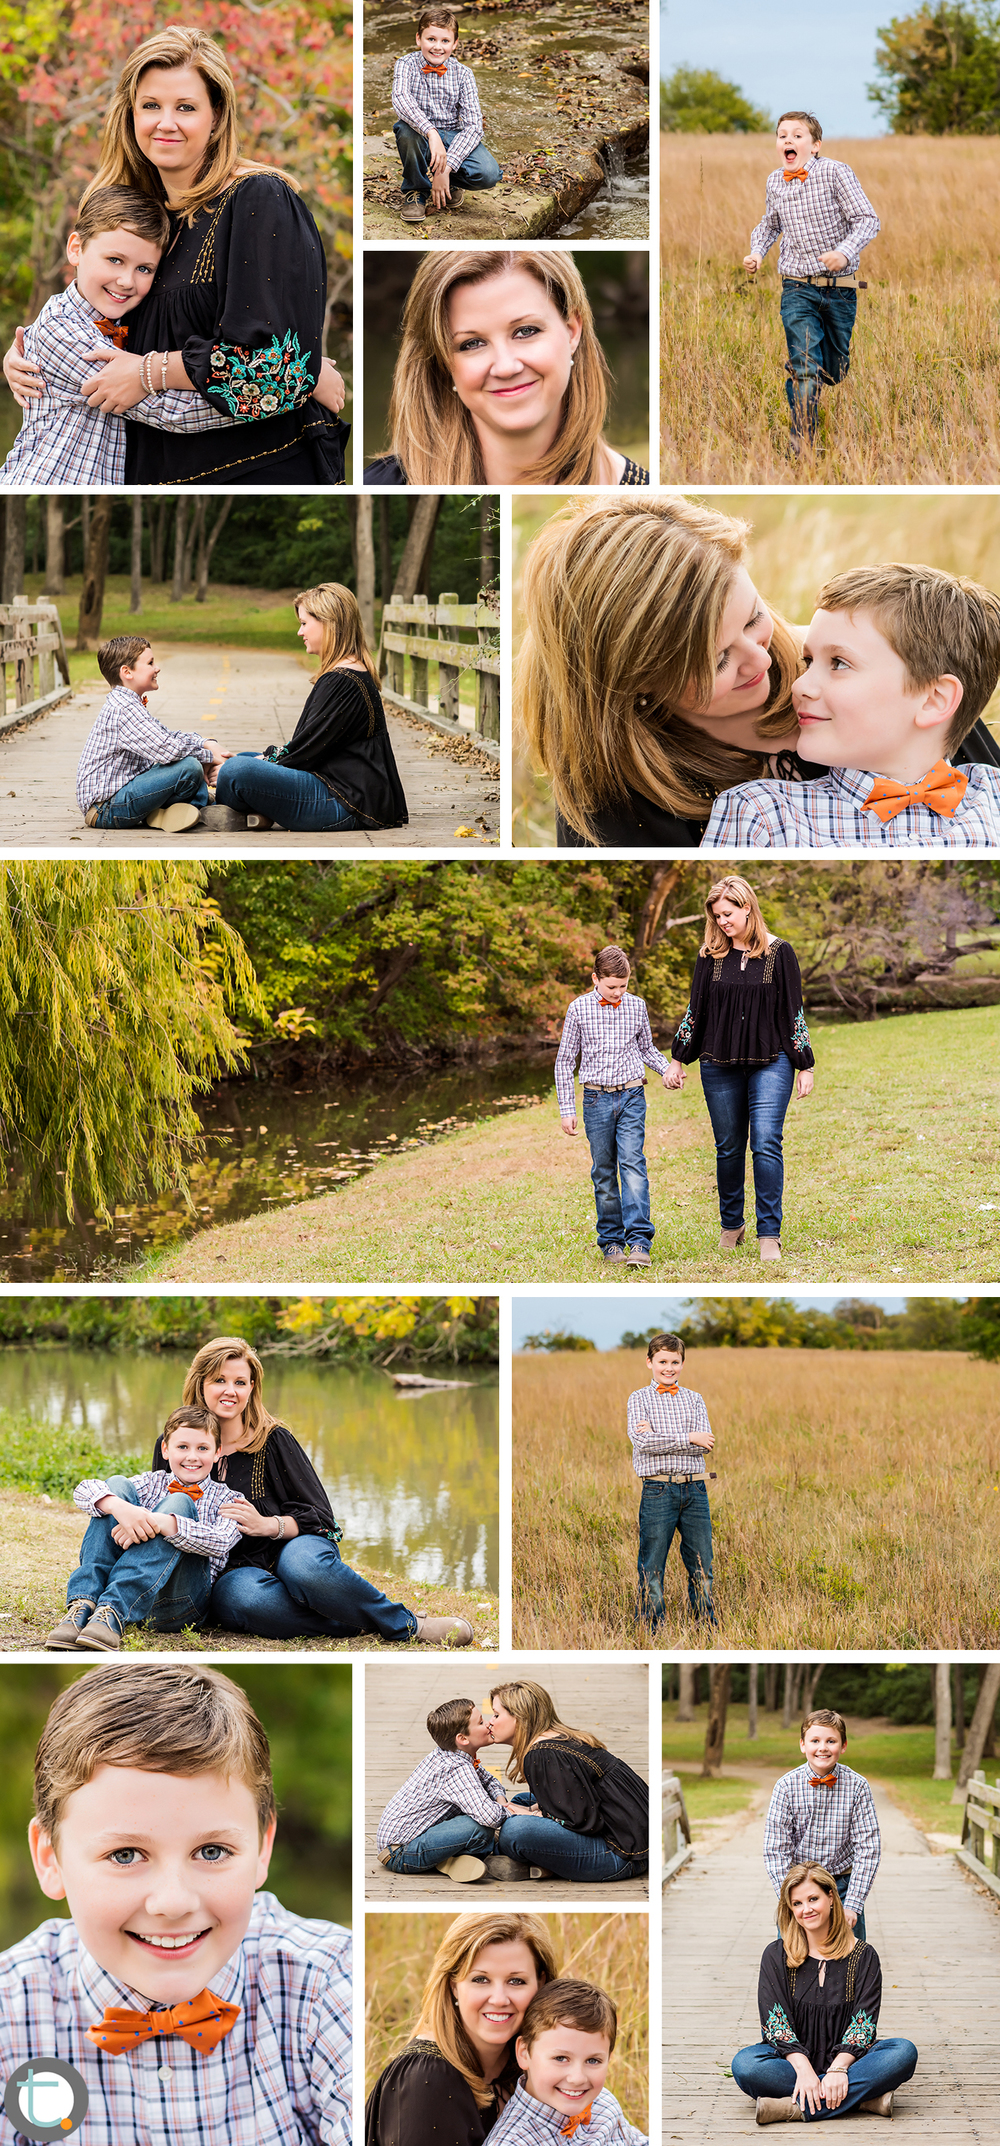 tween_boy_mother_son_fall_family_two_field_lake_whiterocklake_dallas_tracyallynphotography